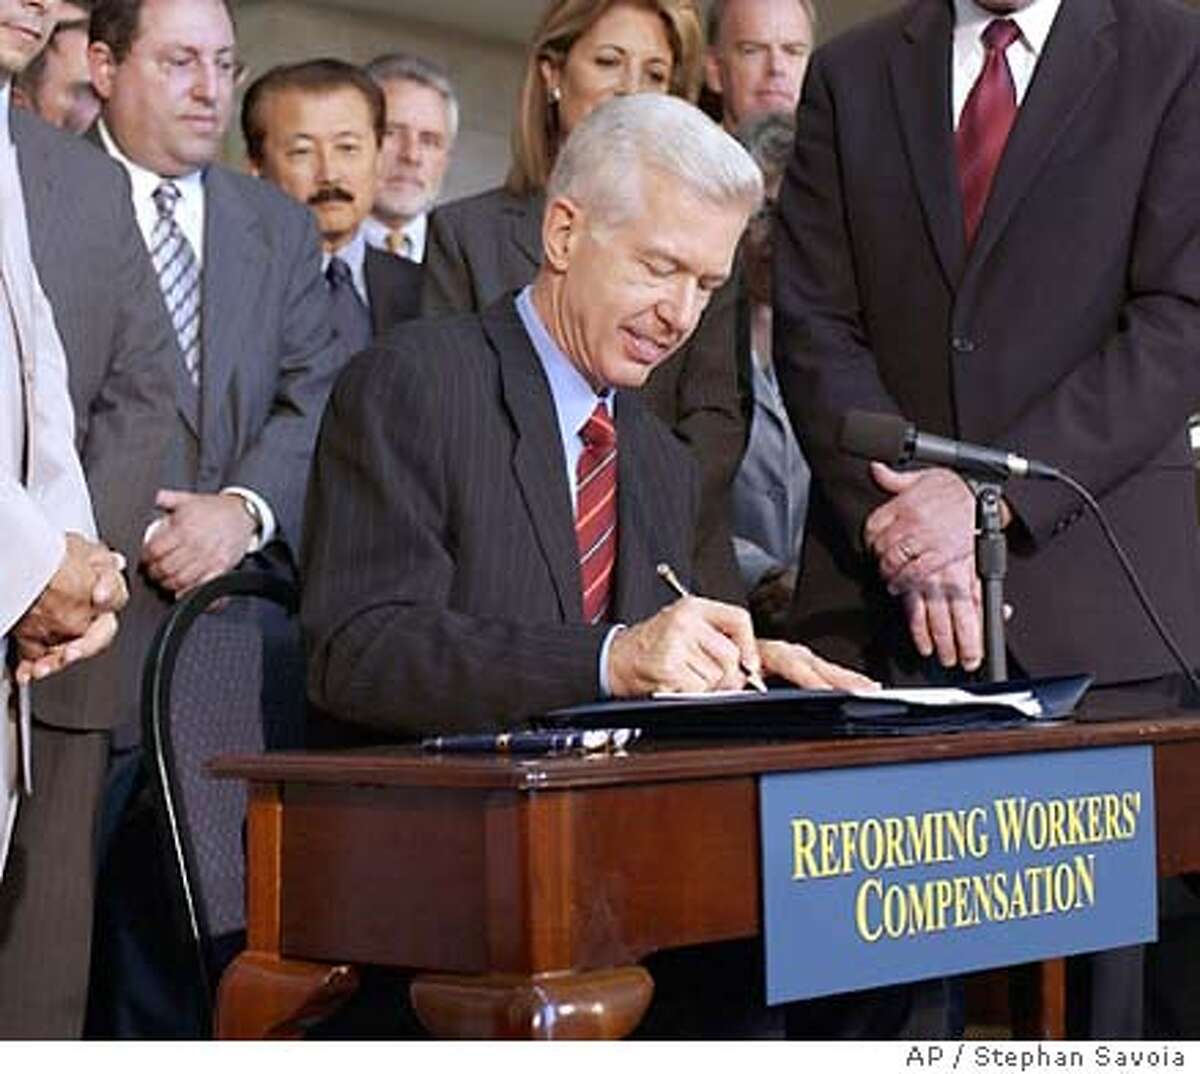 Gov. Gray Davis signs a Workmens Compensation Bill into law during a ceremony at the Los Angeles Chamber of Commerce Tuesday, Sept. 30, 2003, in Los Angeles. Davis pledged the package will reduce high premiums for businesses -a key issue in the recall campaign. (AP Photo/Stephan Savoia)